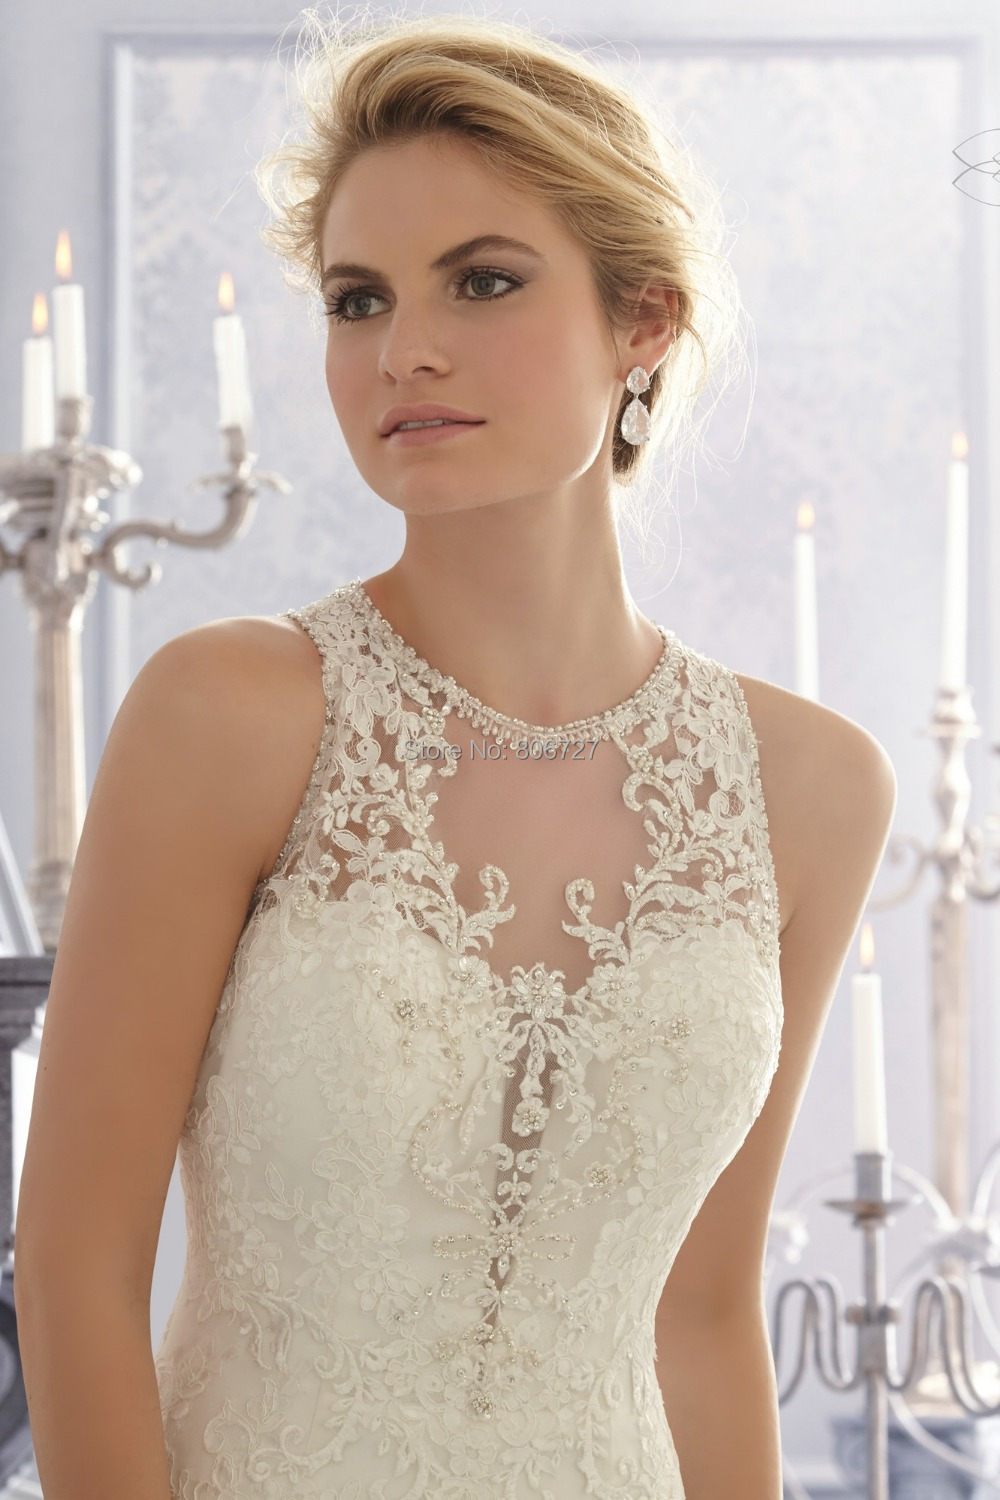 Crystal beads lace applique mermaid lace wedding dress patterns